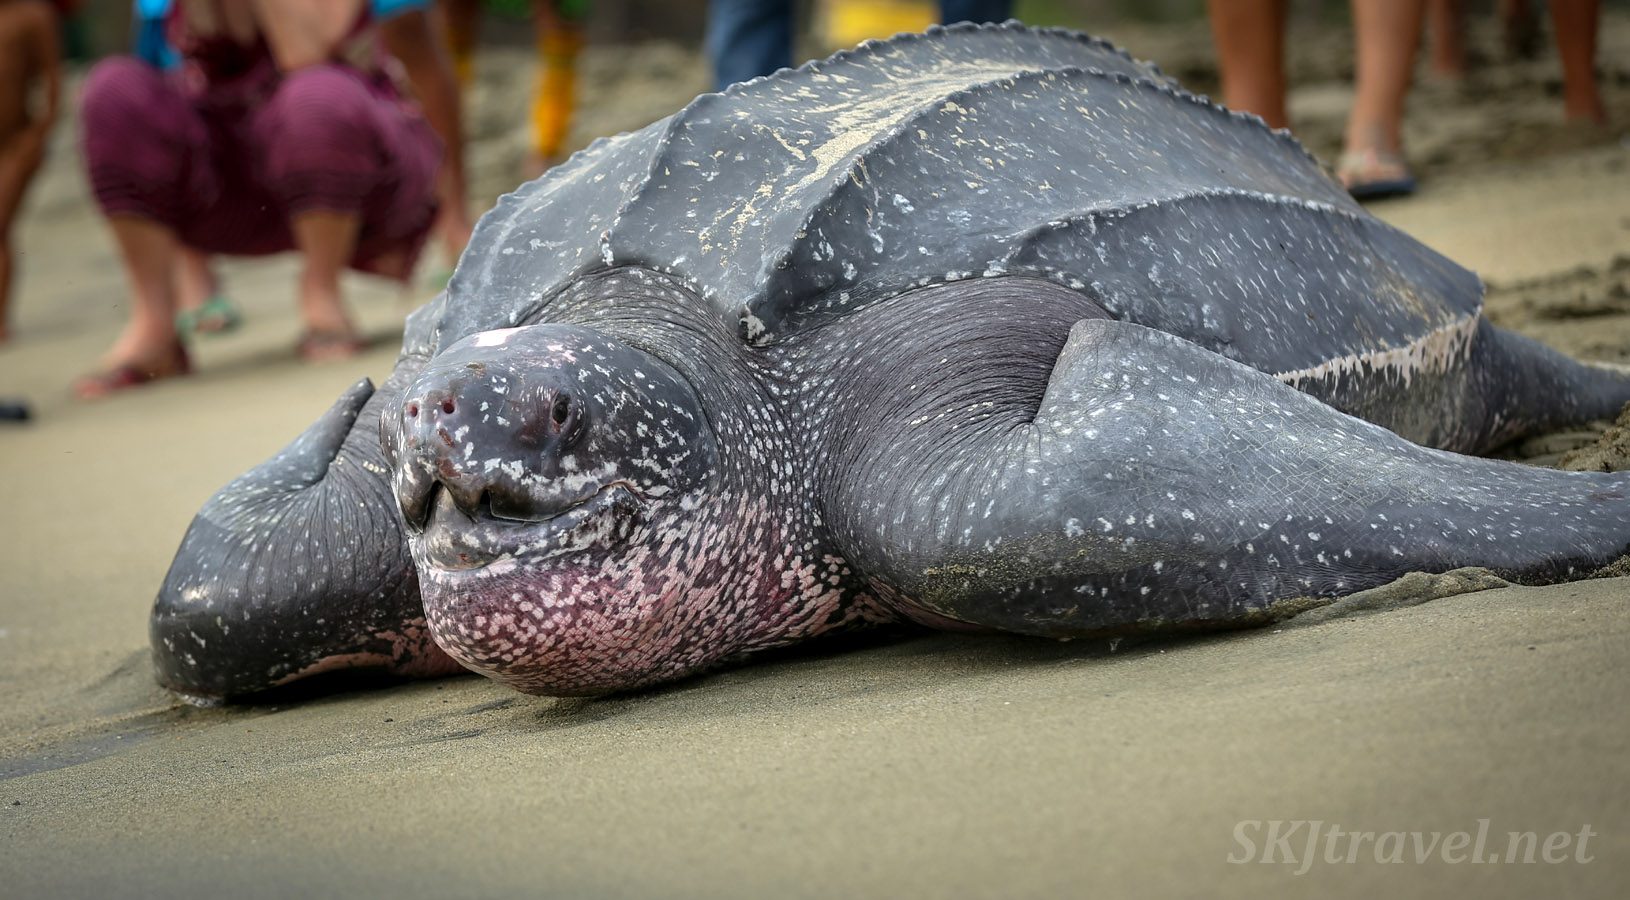 Female leatherback turtle making her way back to ocean after laying her eggs. Armila, Guna Yala, Panama.